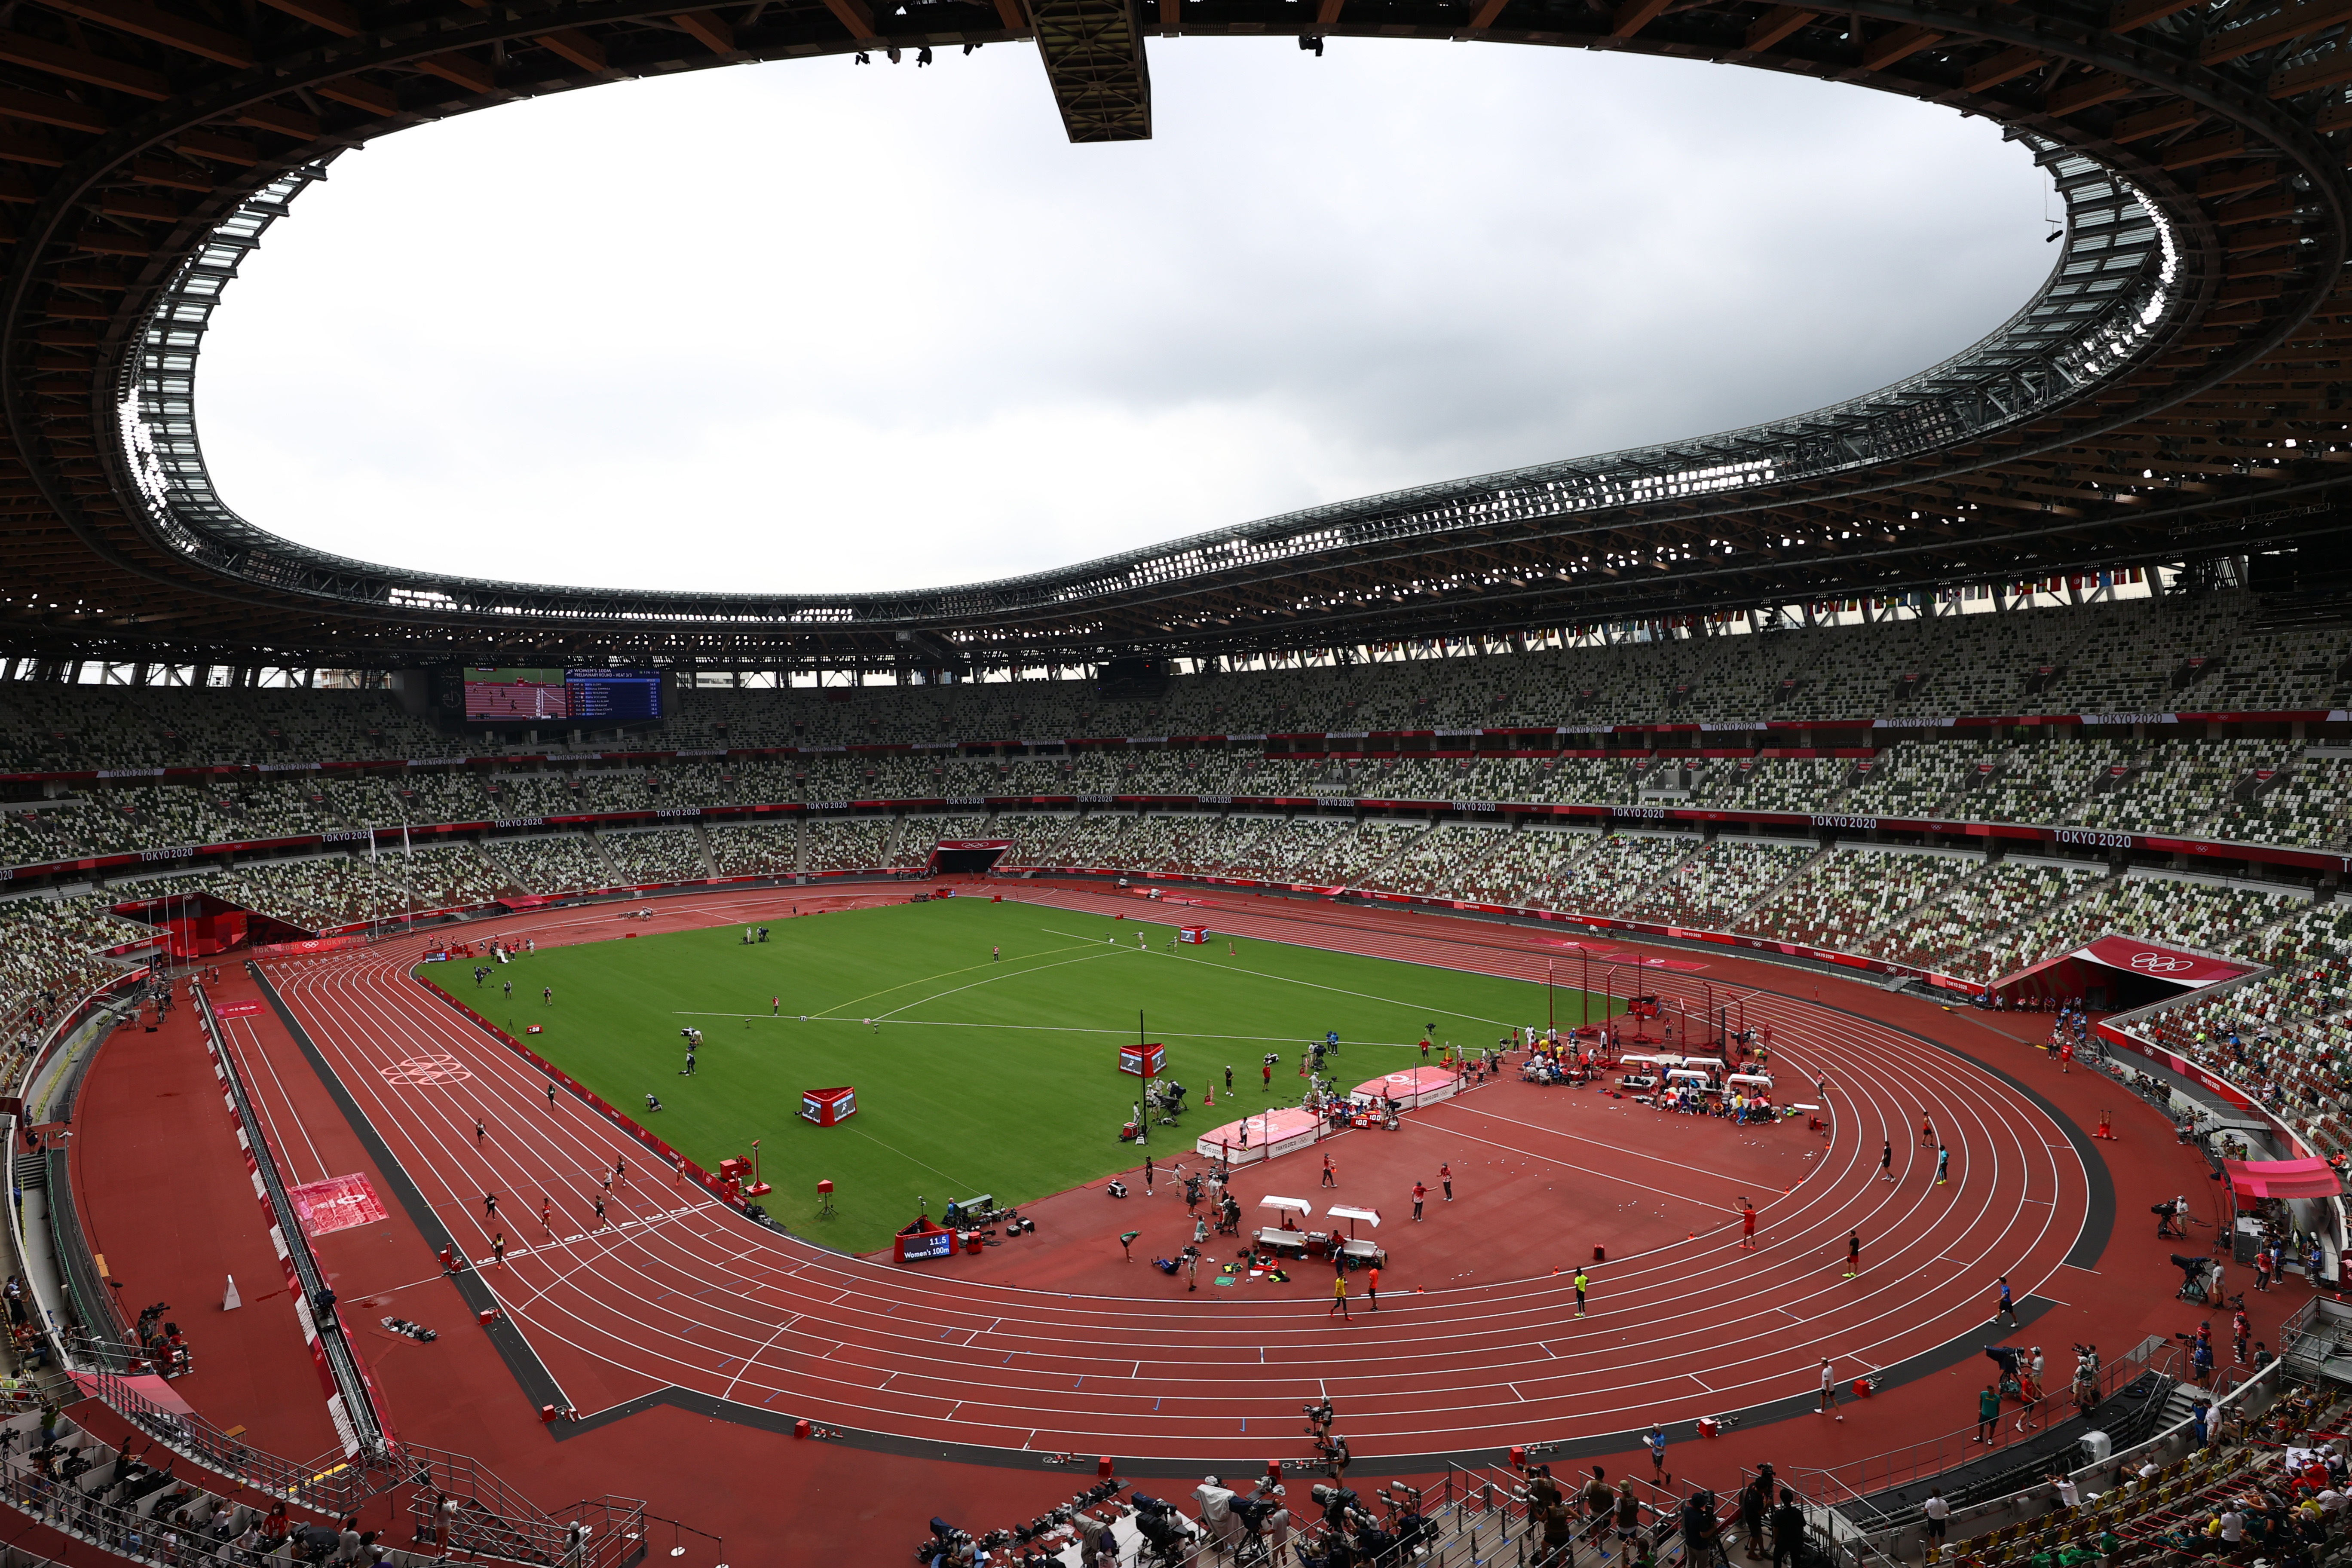 Tokyo 2020 Olympics - Athletics - Women's 100m - Preliminary Round - OLS - Olympic Stadium, Tokyo, Japan - July 30, 2021. General view of the Olympic Stadium during Heat 3 REUTERS/Andrew Boyers